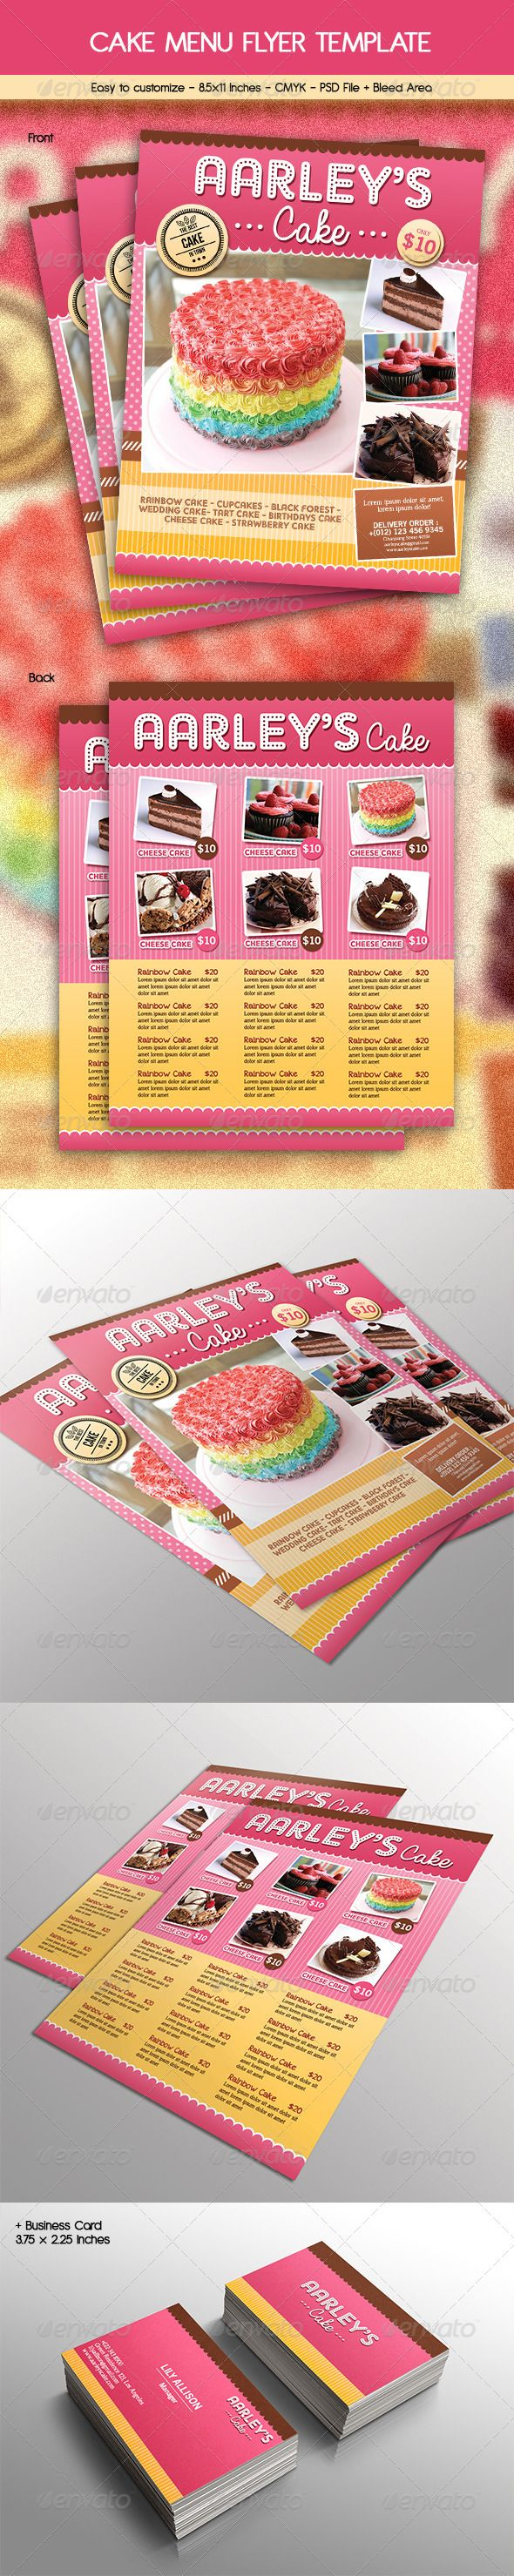 best images about ld poster restaurant bakeries cake menu flyer business card